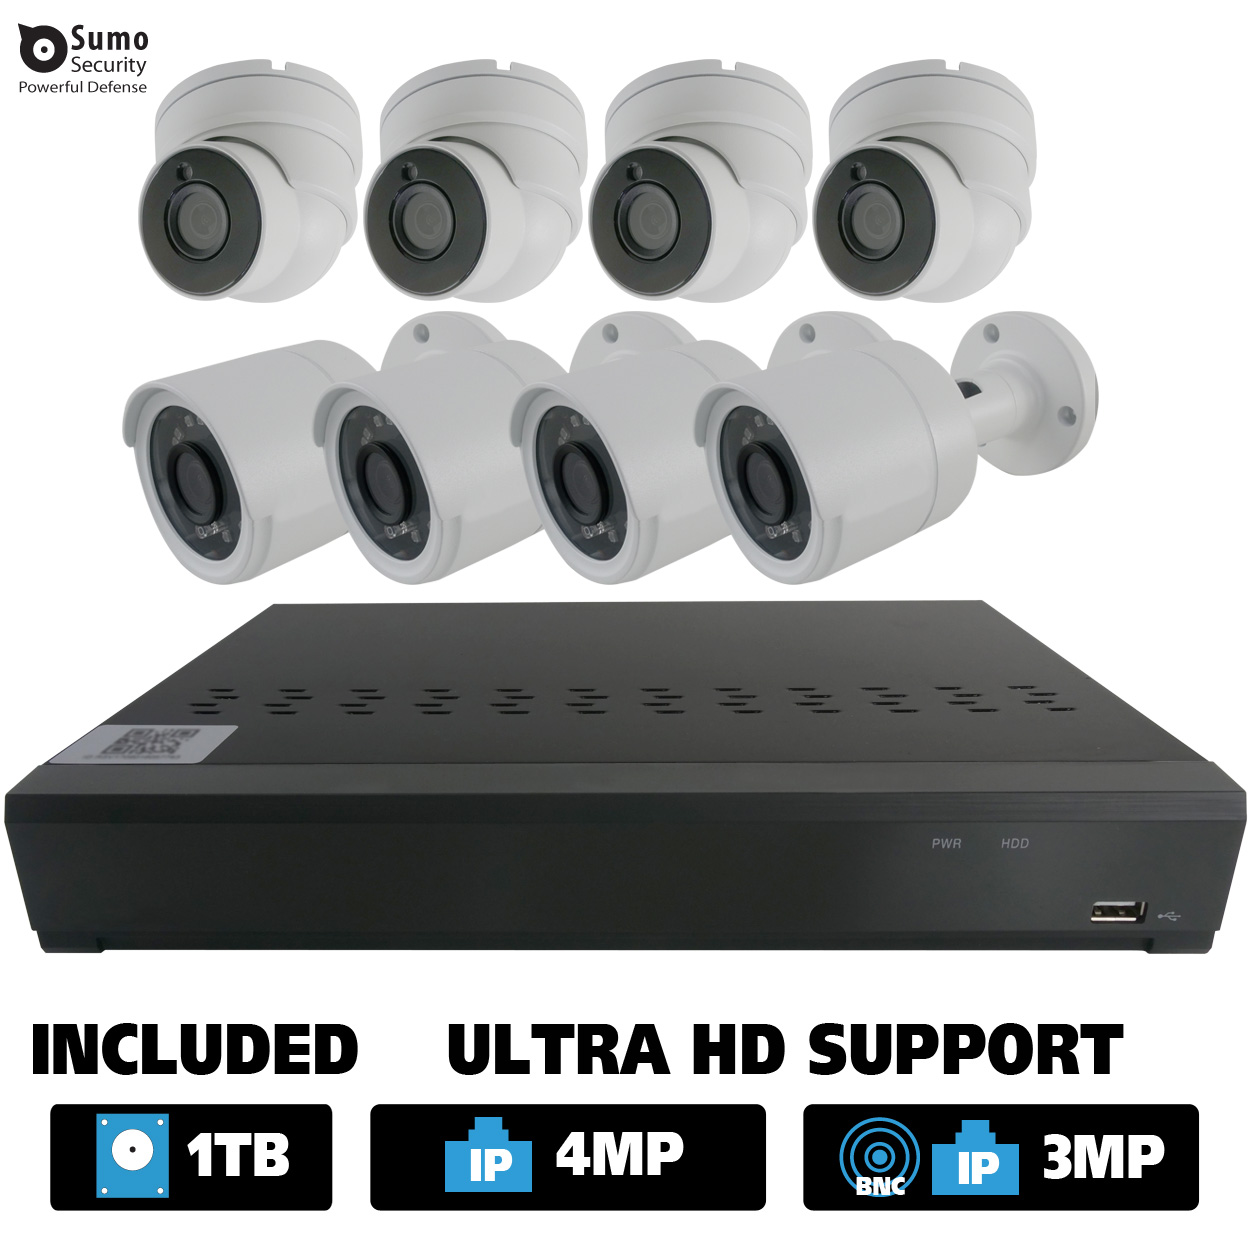 12 Channel Hybrid DVR System with 8 x 2.1MP HD Dome / Bullet Cameras (1TB HDD Included)